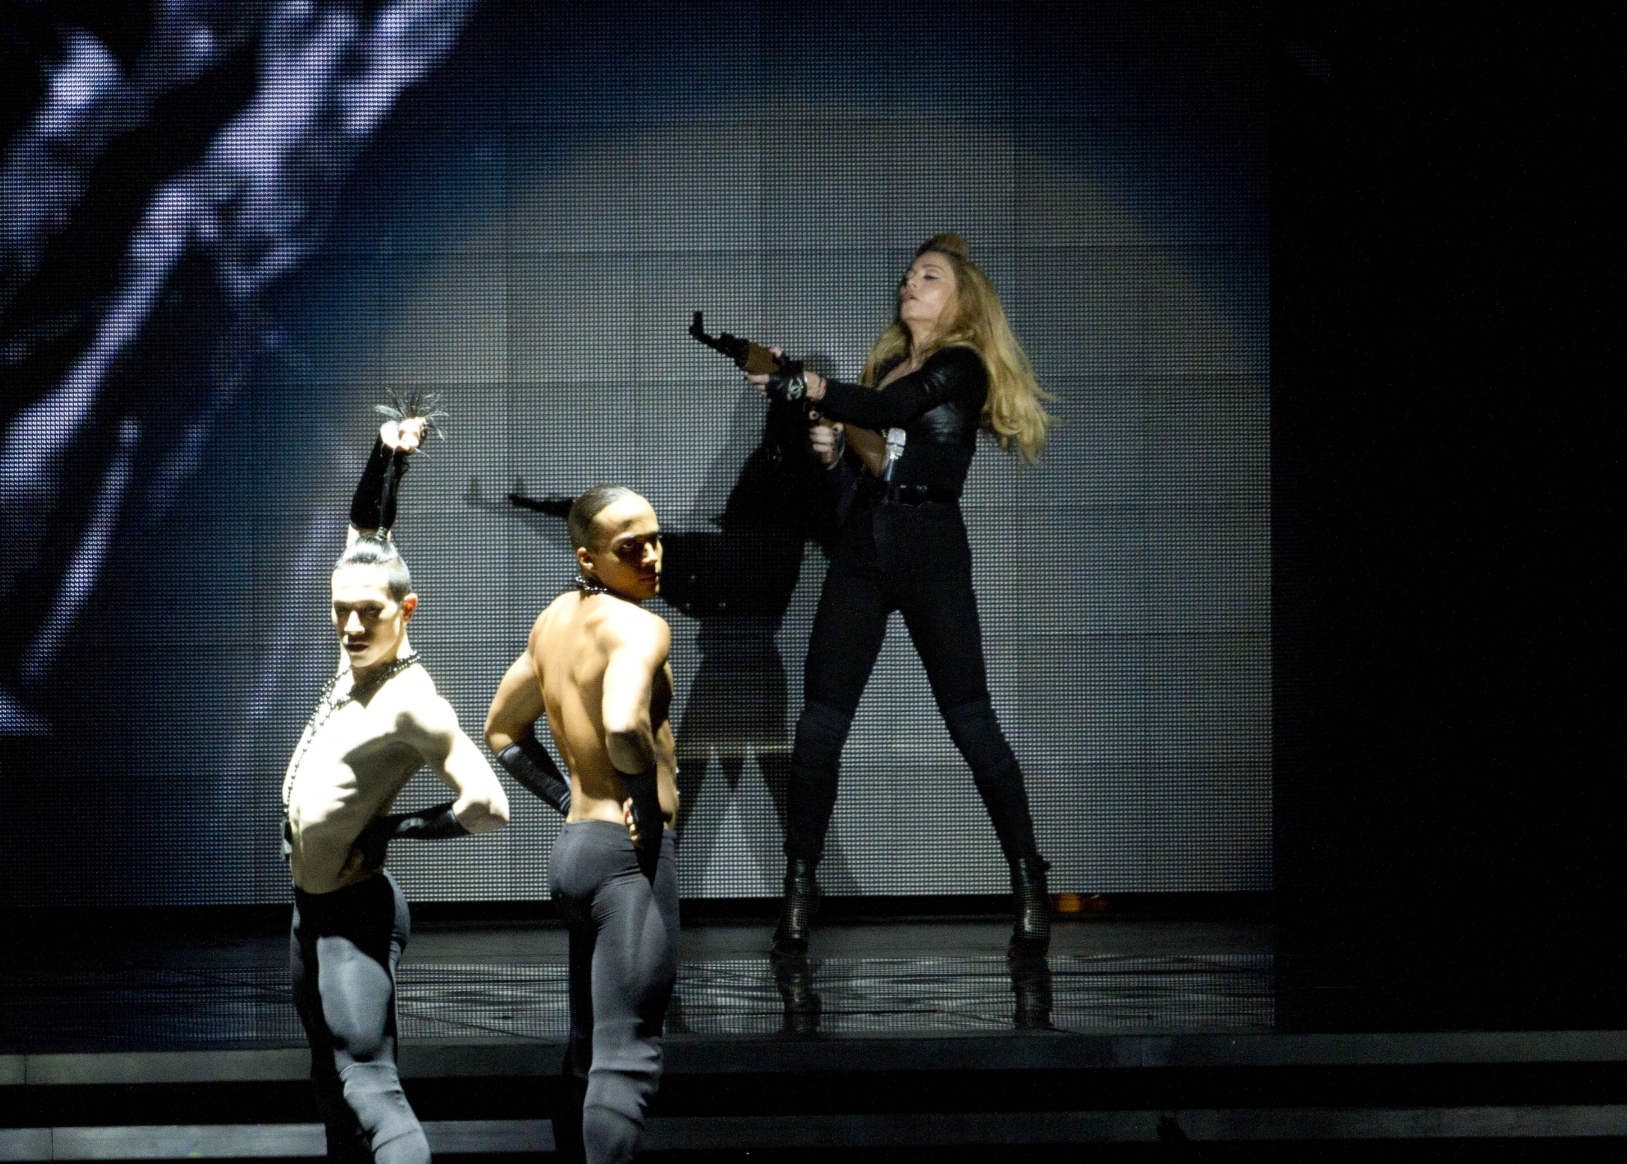 20120531-pictures-madonna-mdna-tour-tel-aviv-opening-08